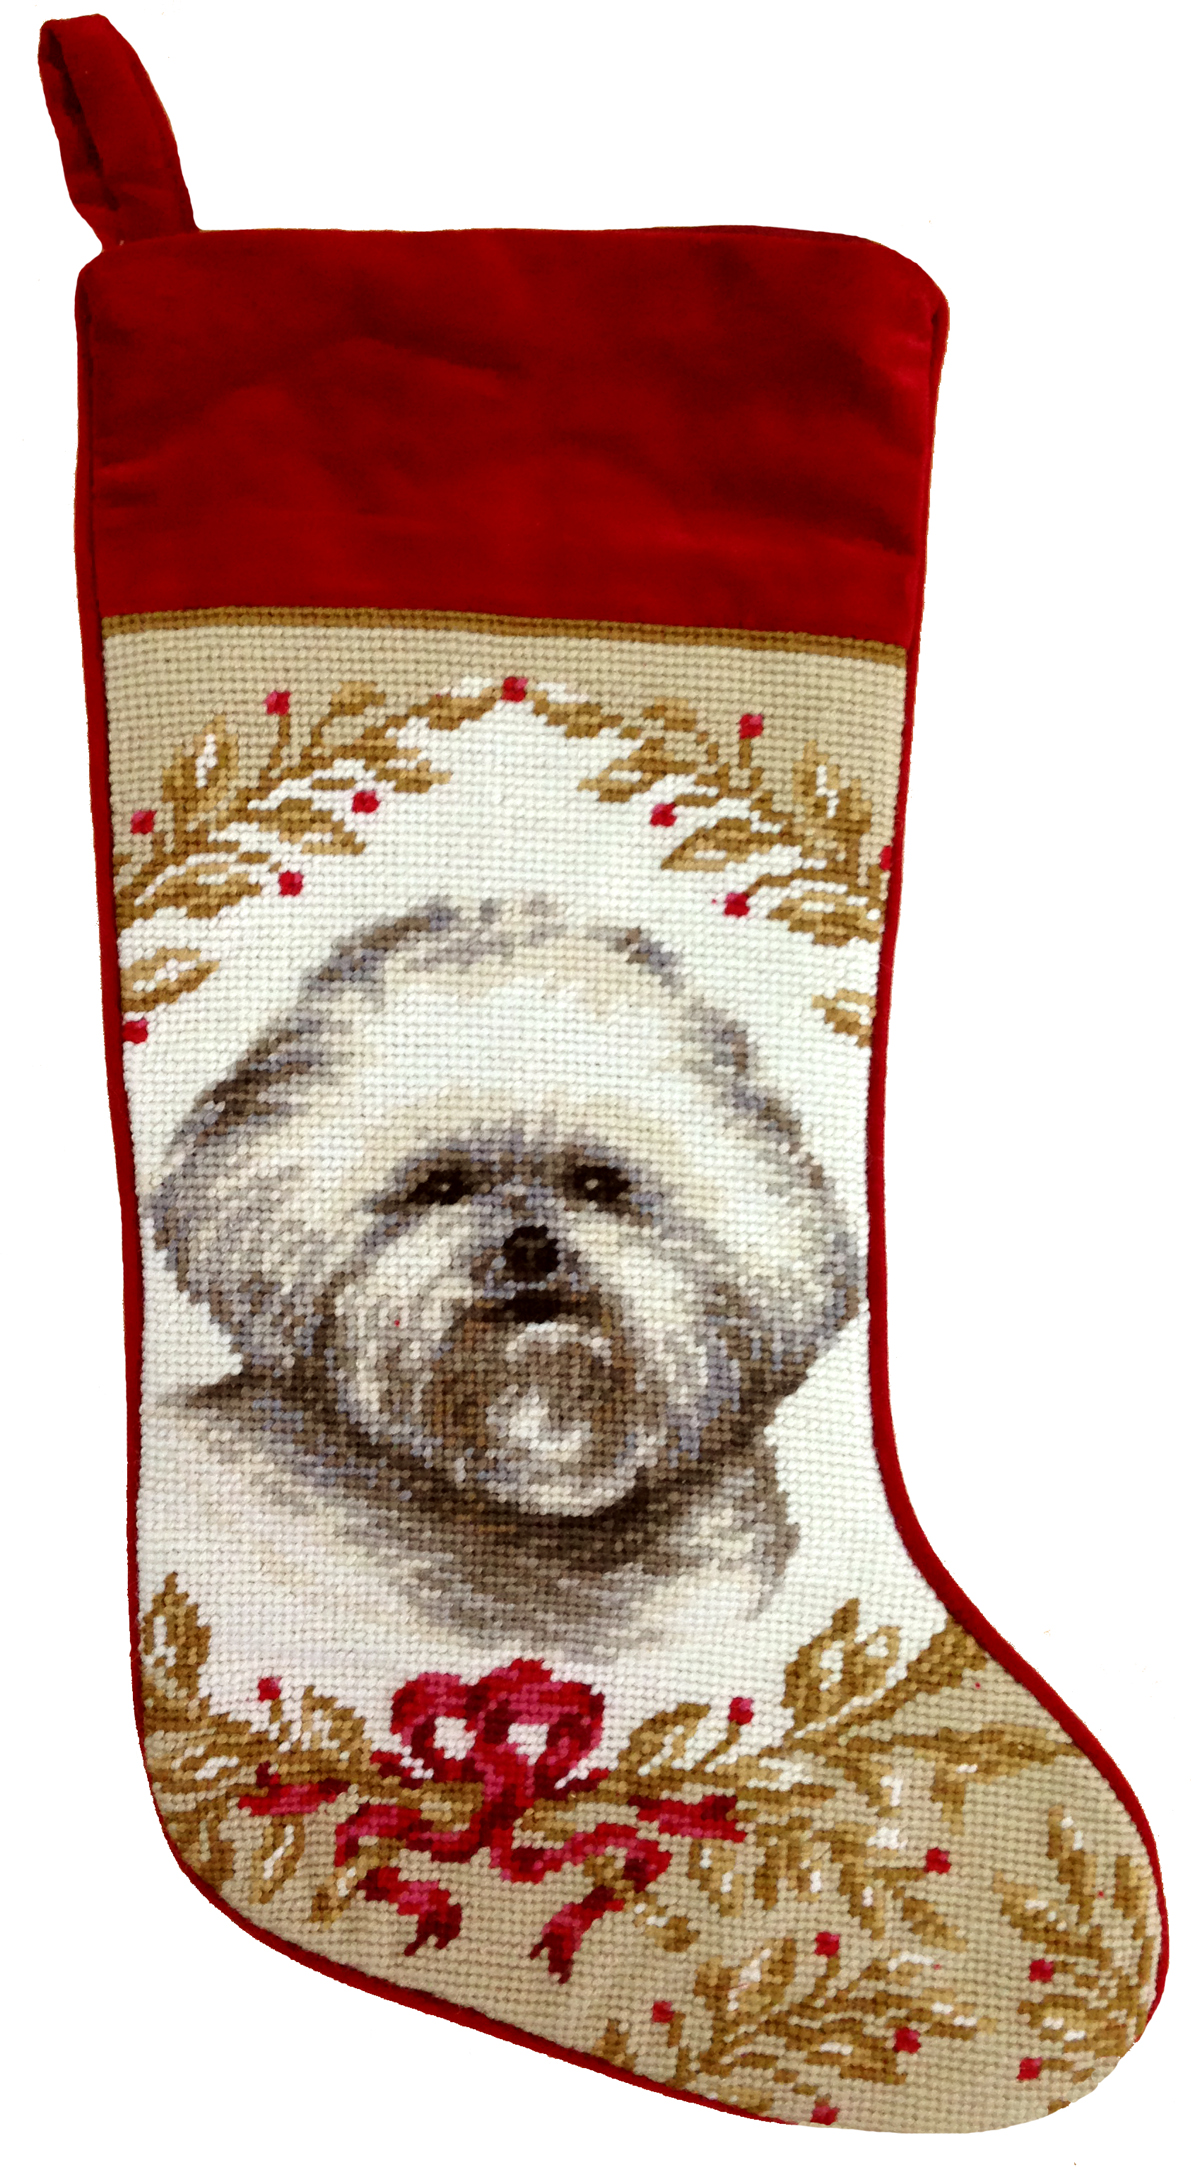 Cool personalized needlepoint christmas stockings for christmas stocking designs with needlepoint christmas stockings personalized